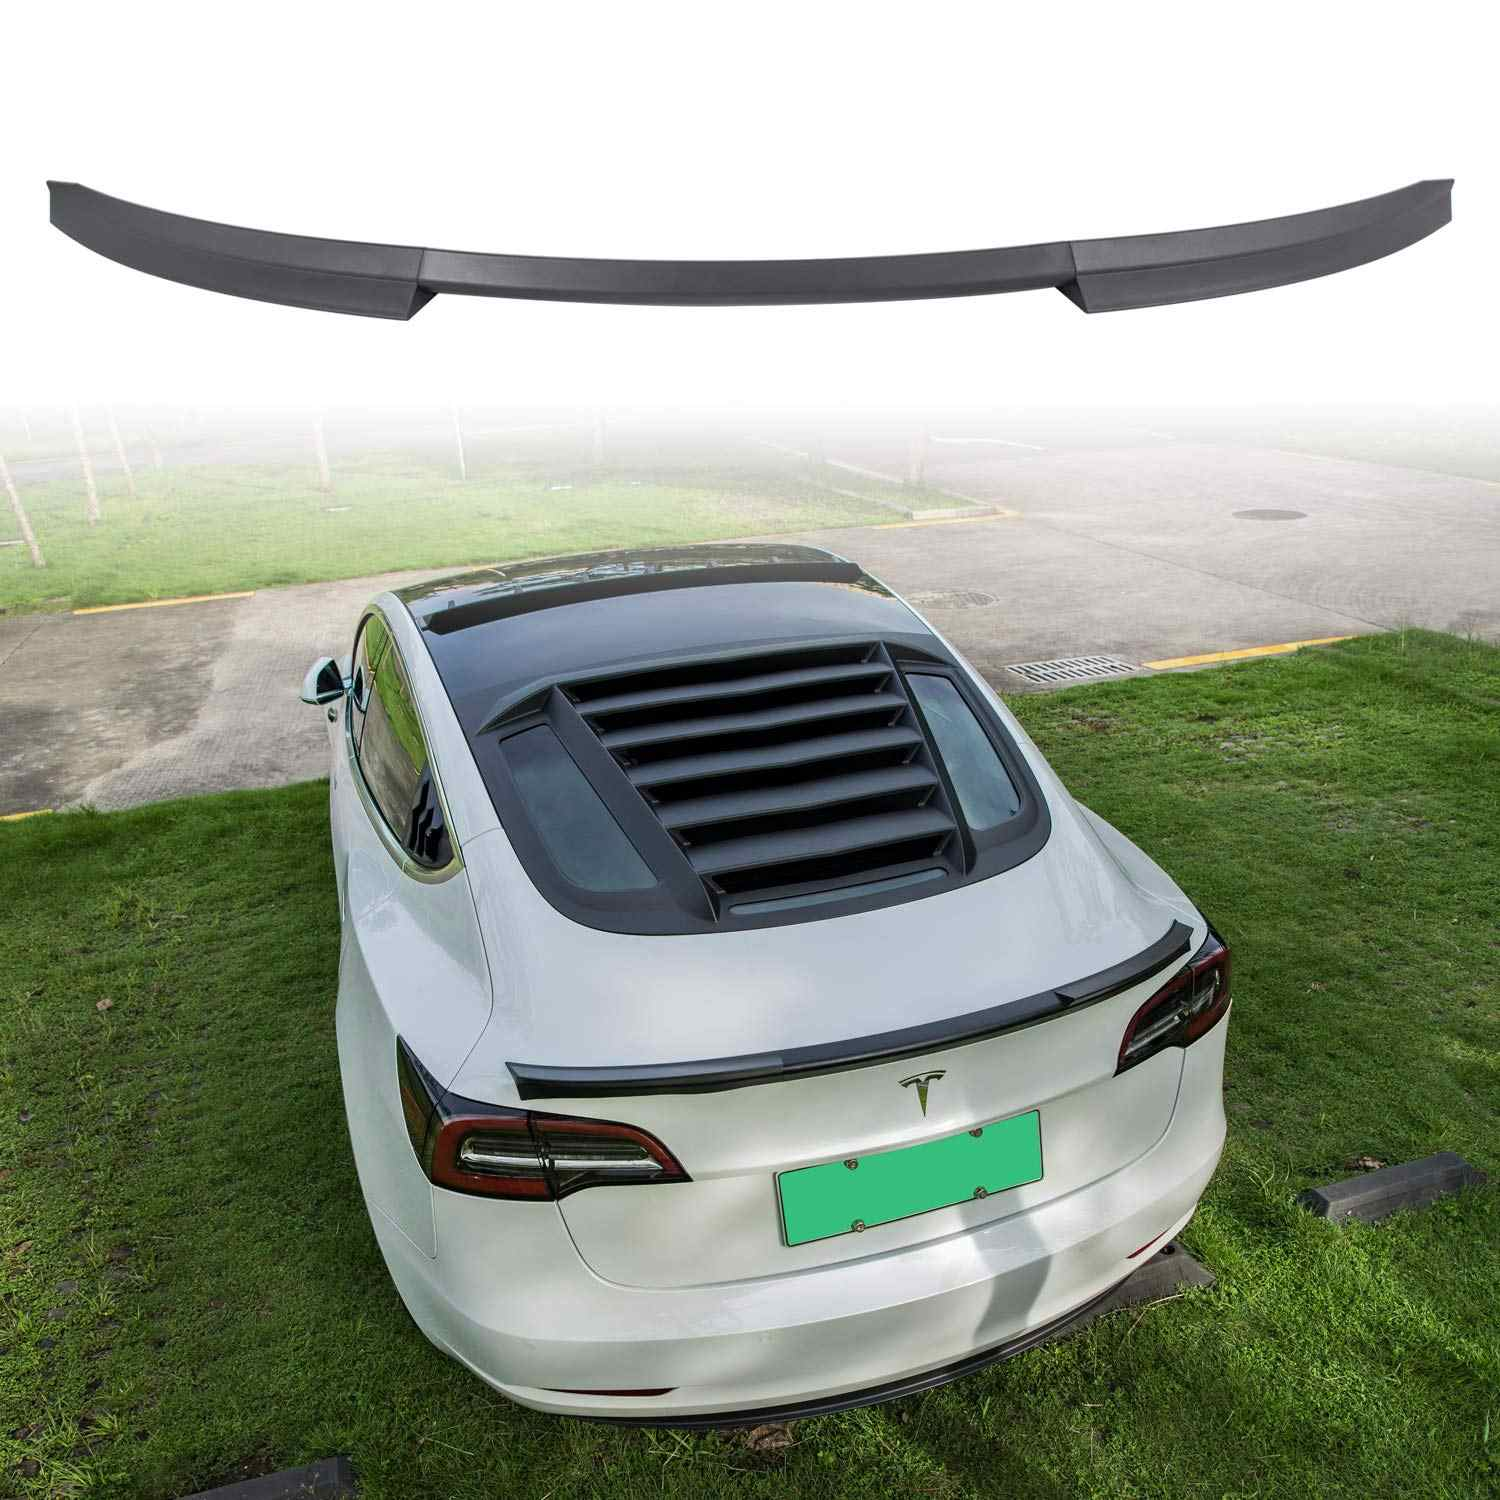 Carbon Fiber Pattern Tail Wing Rear Spoiler Trunk Cover Trim for ...